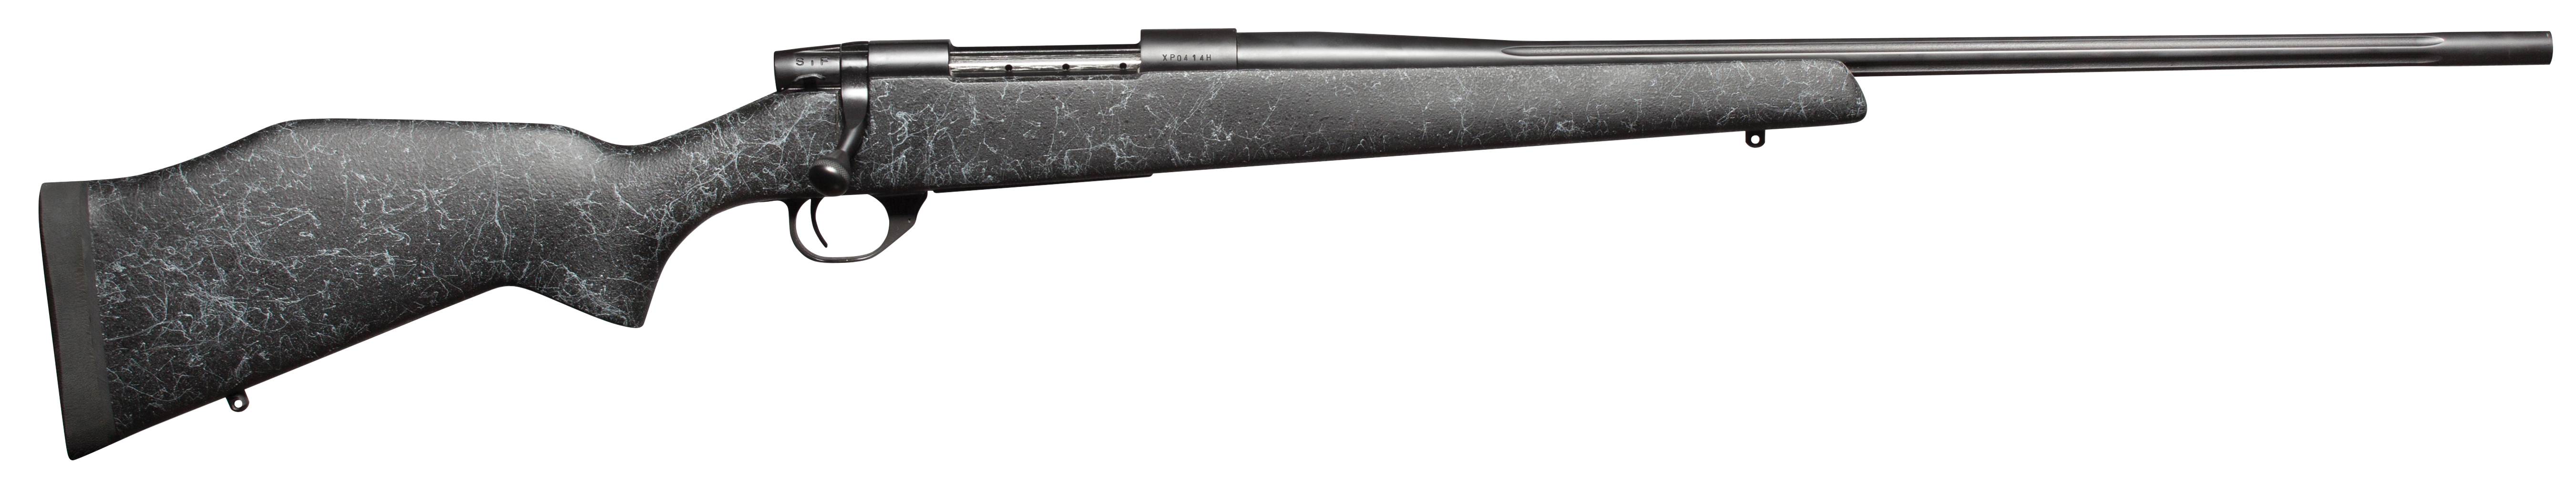 Weatherby Vanguard Wilderness 257 Wby Mag 26